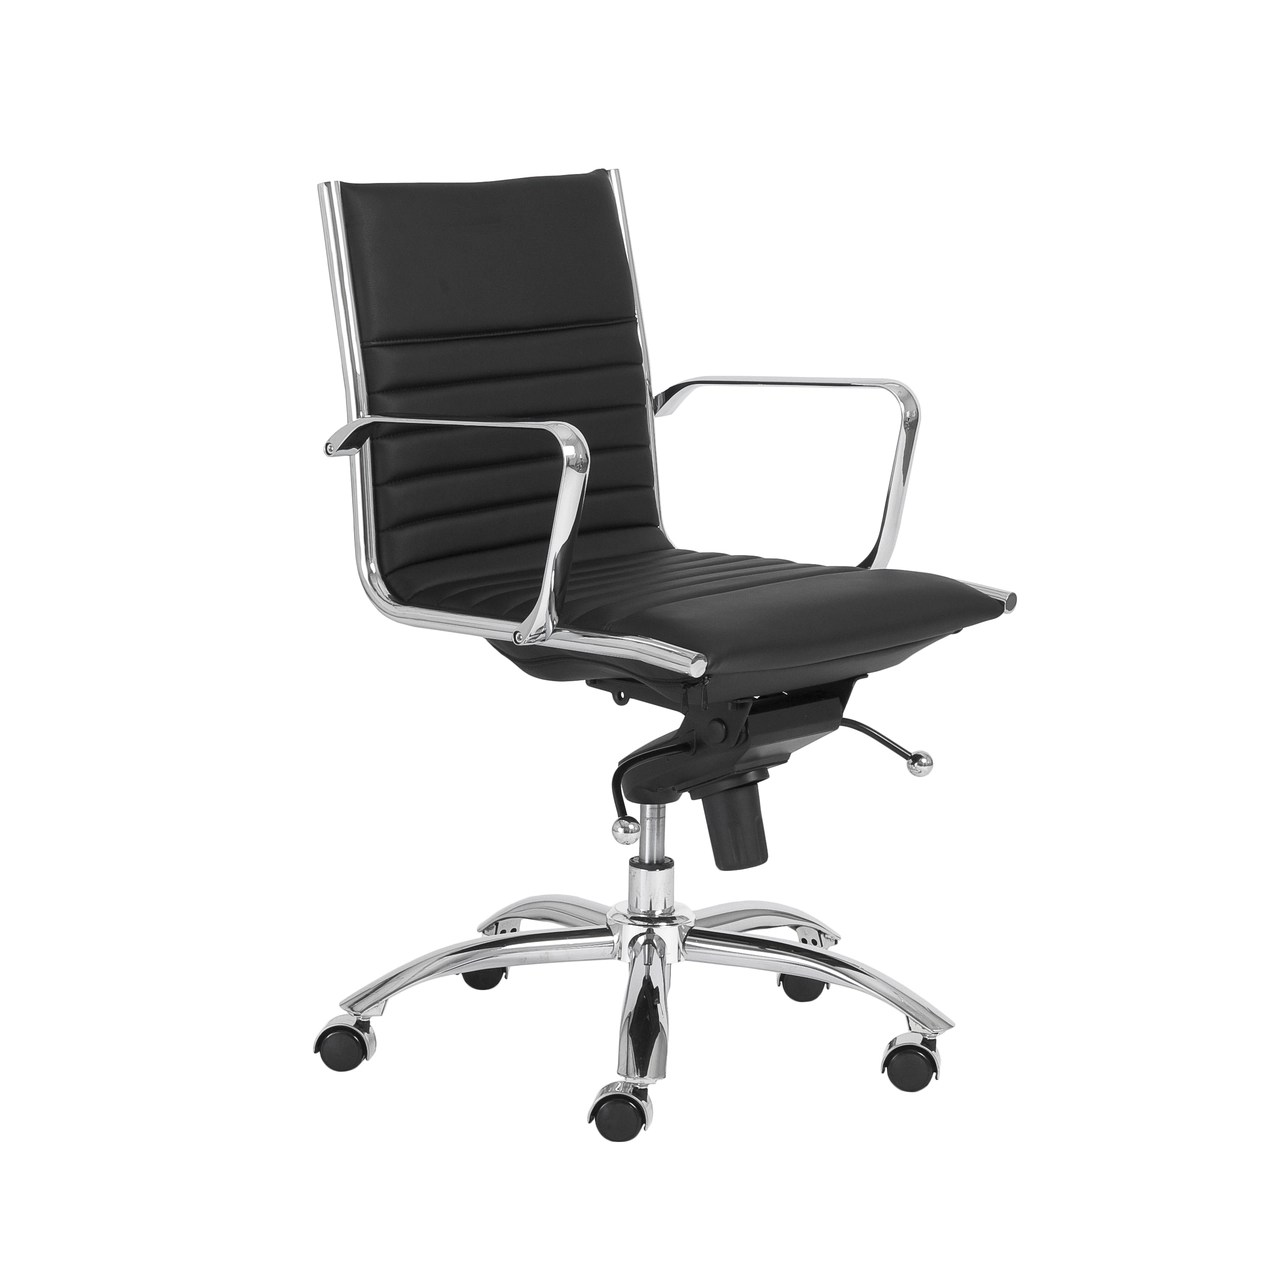 Low Back Office Chair Dirk Low Back Adjustable Office Chair In Black Leatherette